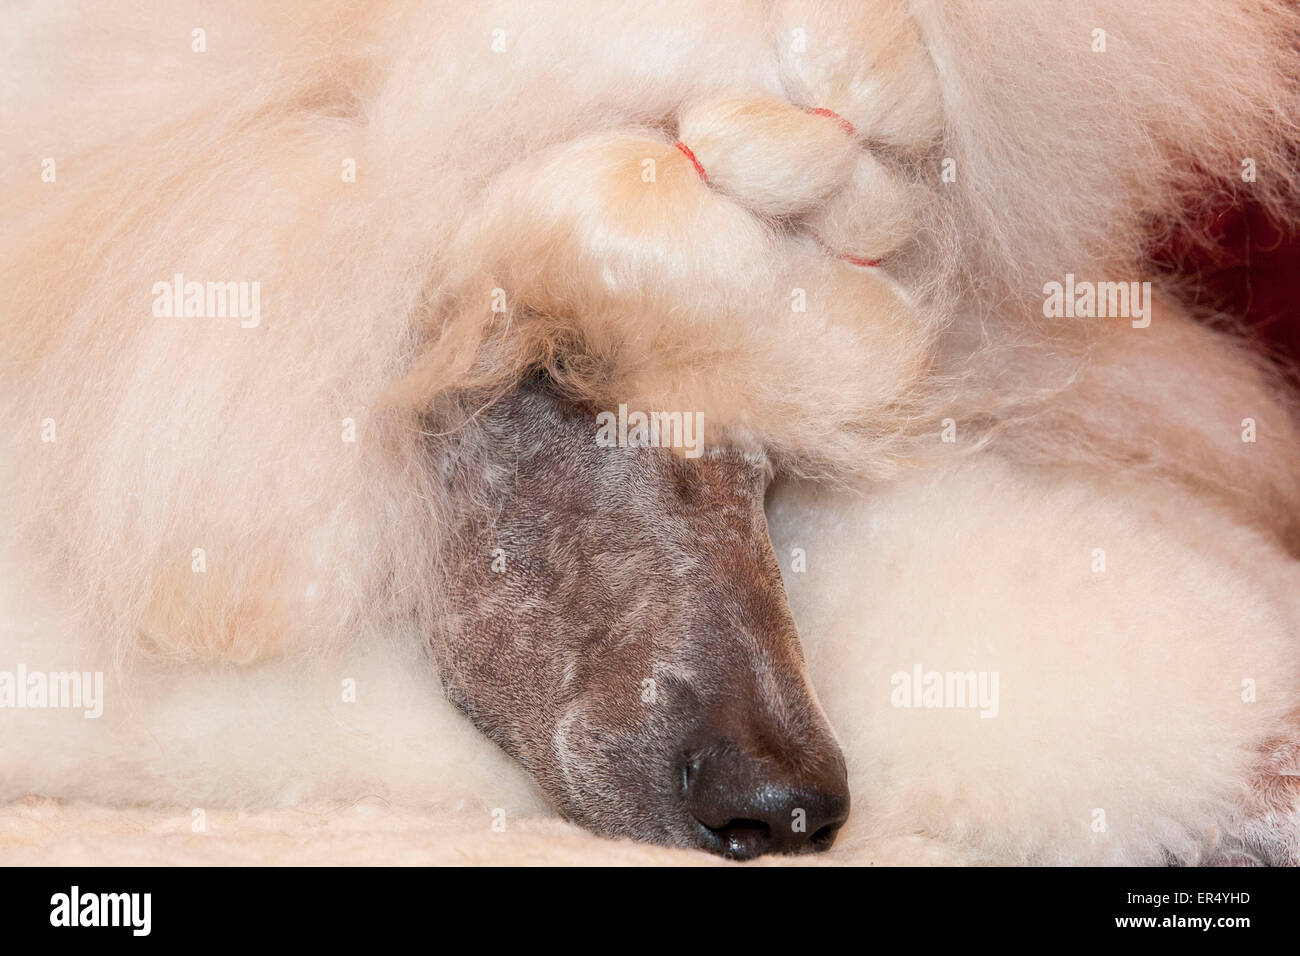 Sleeping poodle. Crufts 2014 at the NEC in Birmingham, UK. 8th March 2014 - Stock Image